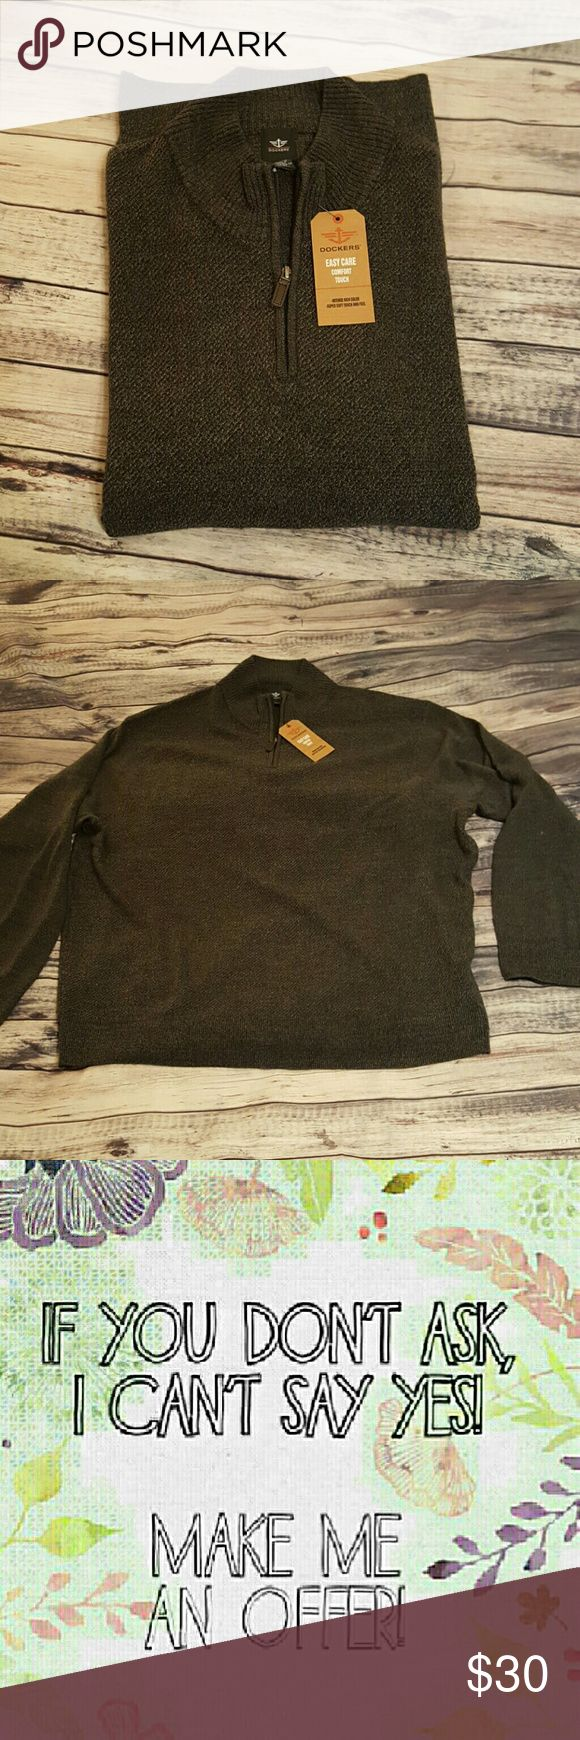 Dockers Men's sweater, size XXL NWT Dockers Men's sweater, size XXL NWT.  This is an easy case, super soft touch and feel.   All my stuff comes from a smoke free and pet free home.  I encourage you to bundle to save on shipping, so check out my closet for other deals! Dockers Sweaters Crewneck